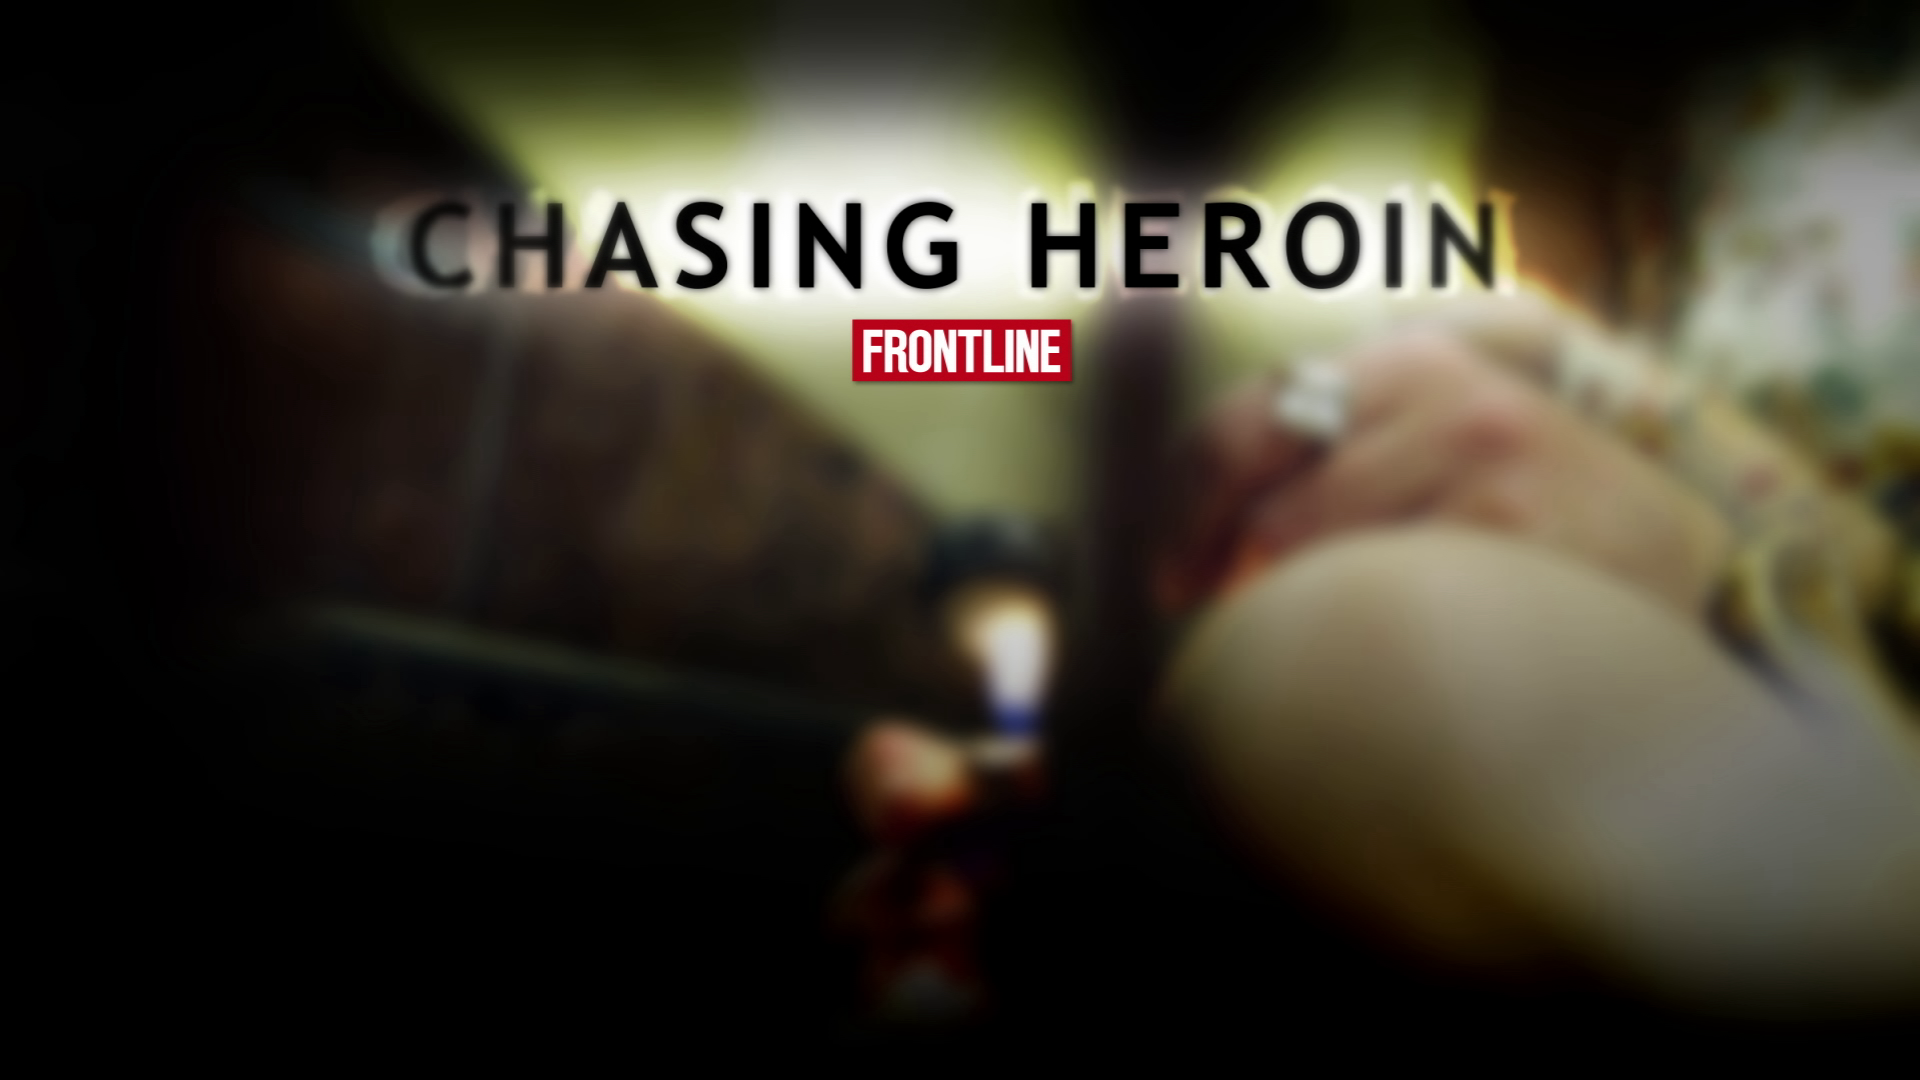 Frontline: Chasing Heroin - Tuesday, February 29, 9 p.m.